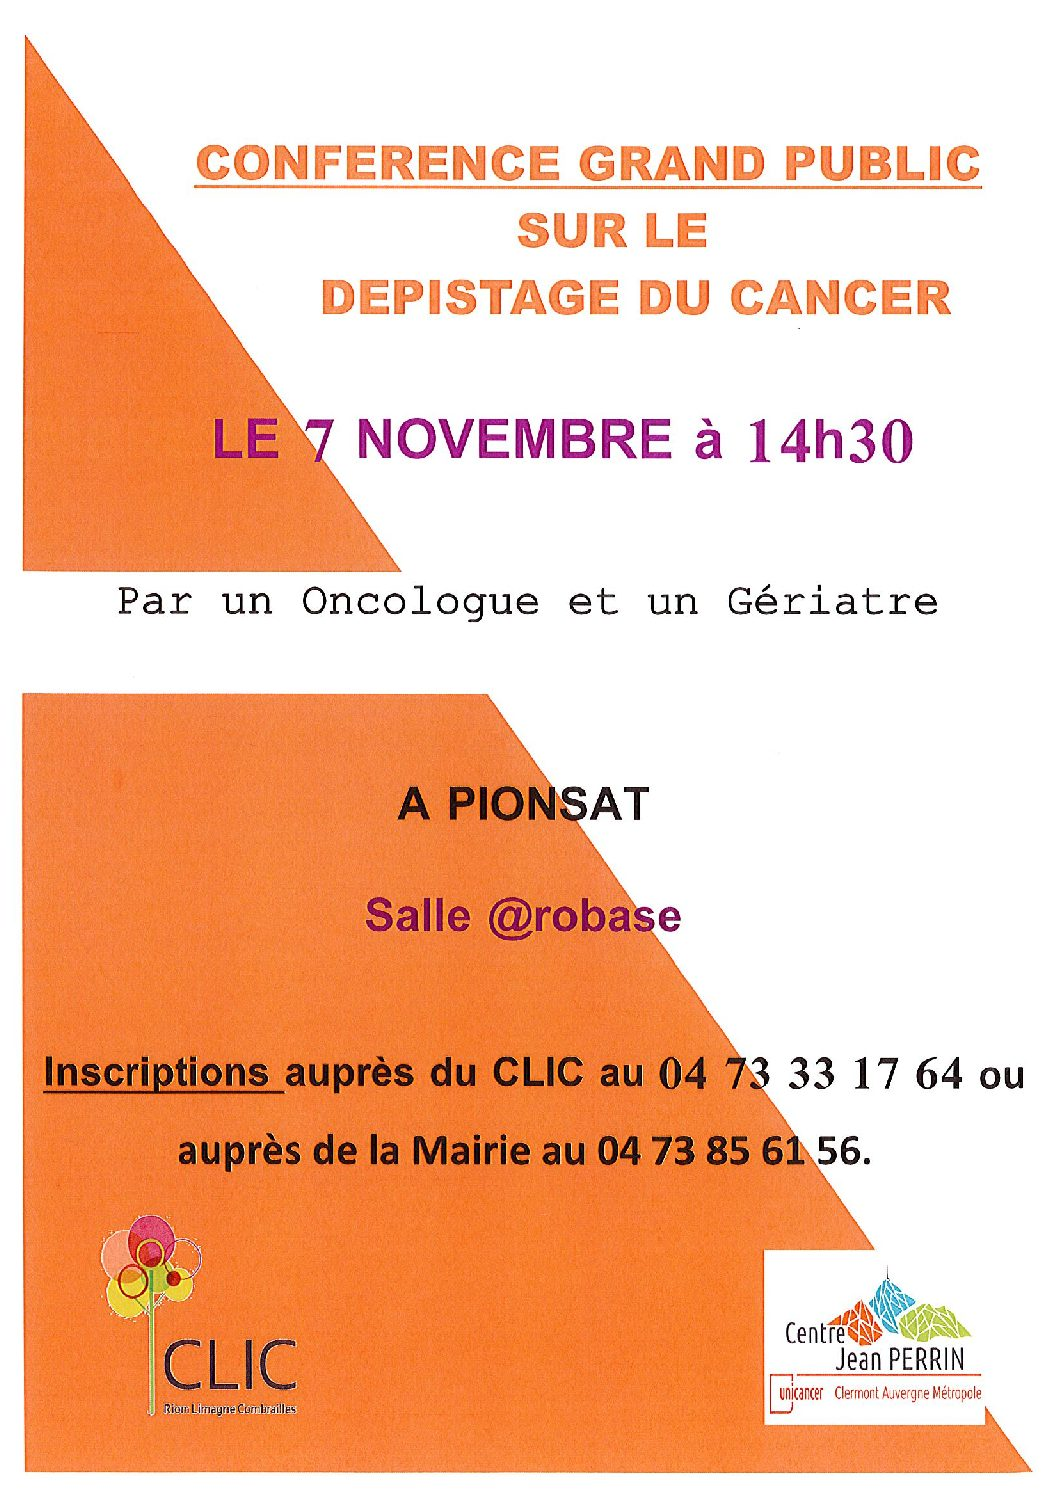 CONFERENCE DEPISTAGE DU CANCER